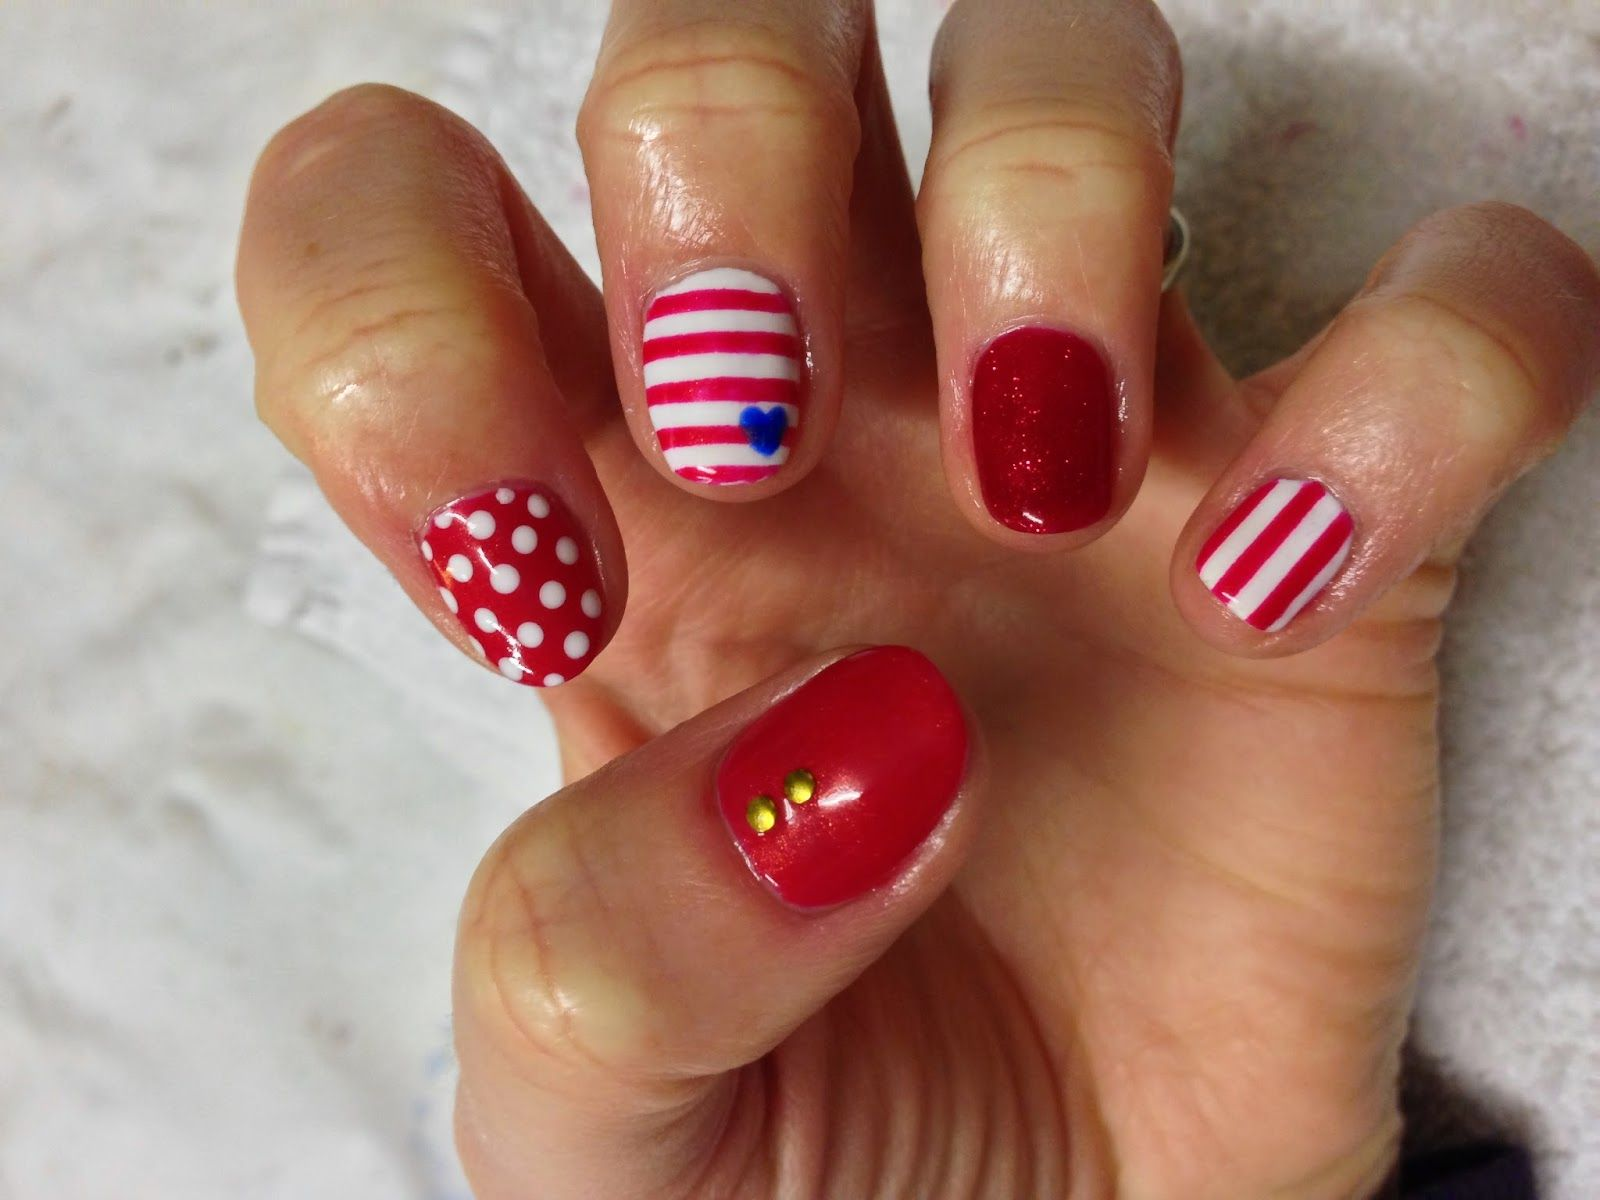 Cnd Shellac Nail Art Nautical Themed Manicure In Hollywood Red